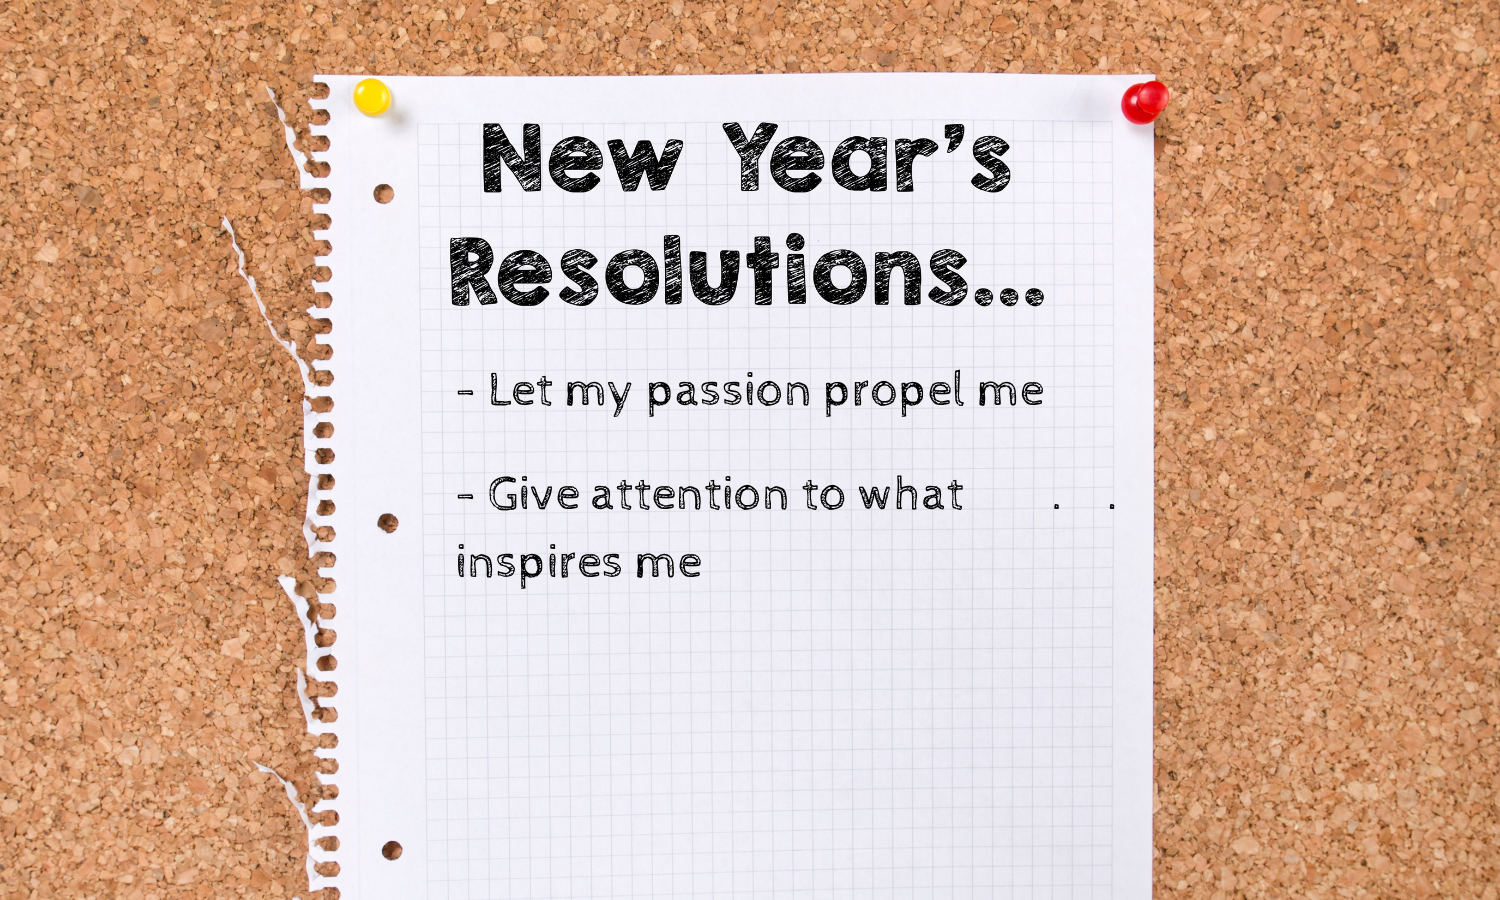 piece of paper tacked to a corkboard. paper says new year's resolutions...let my passion propel me, give attention to what inspires me